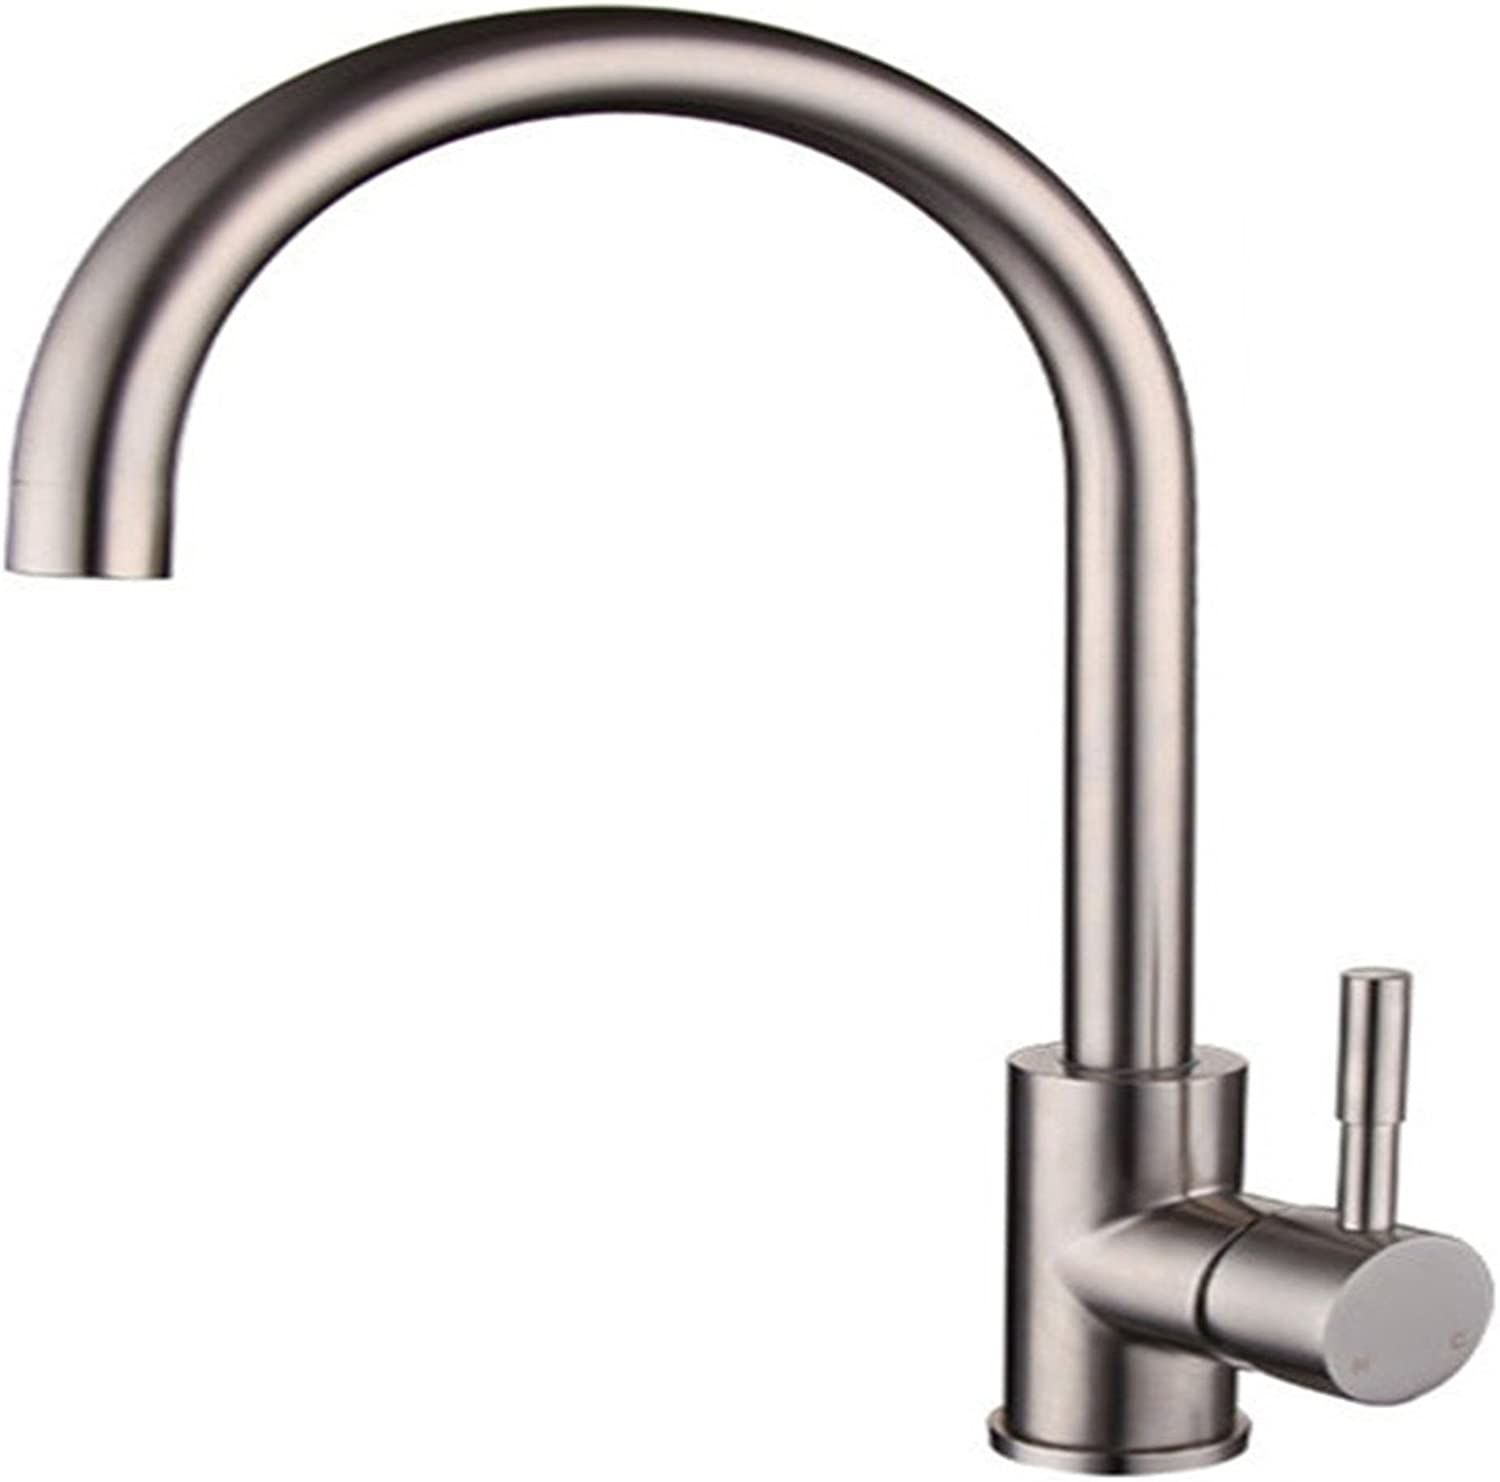 Bijjaladeva Antique Bathroom Sink faucet 304 stainless steel kitchen faucet hot and cold water faucet large sink sink lead-free brushed kitchen greenical faucet